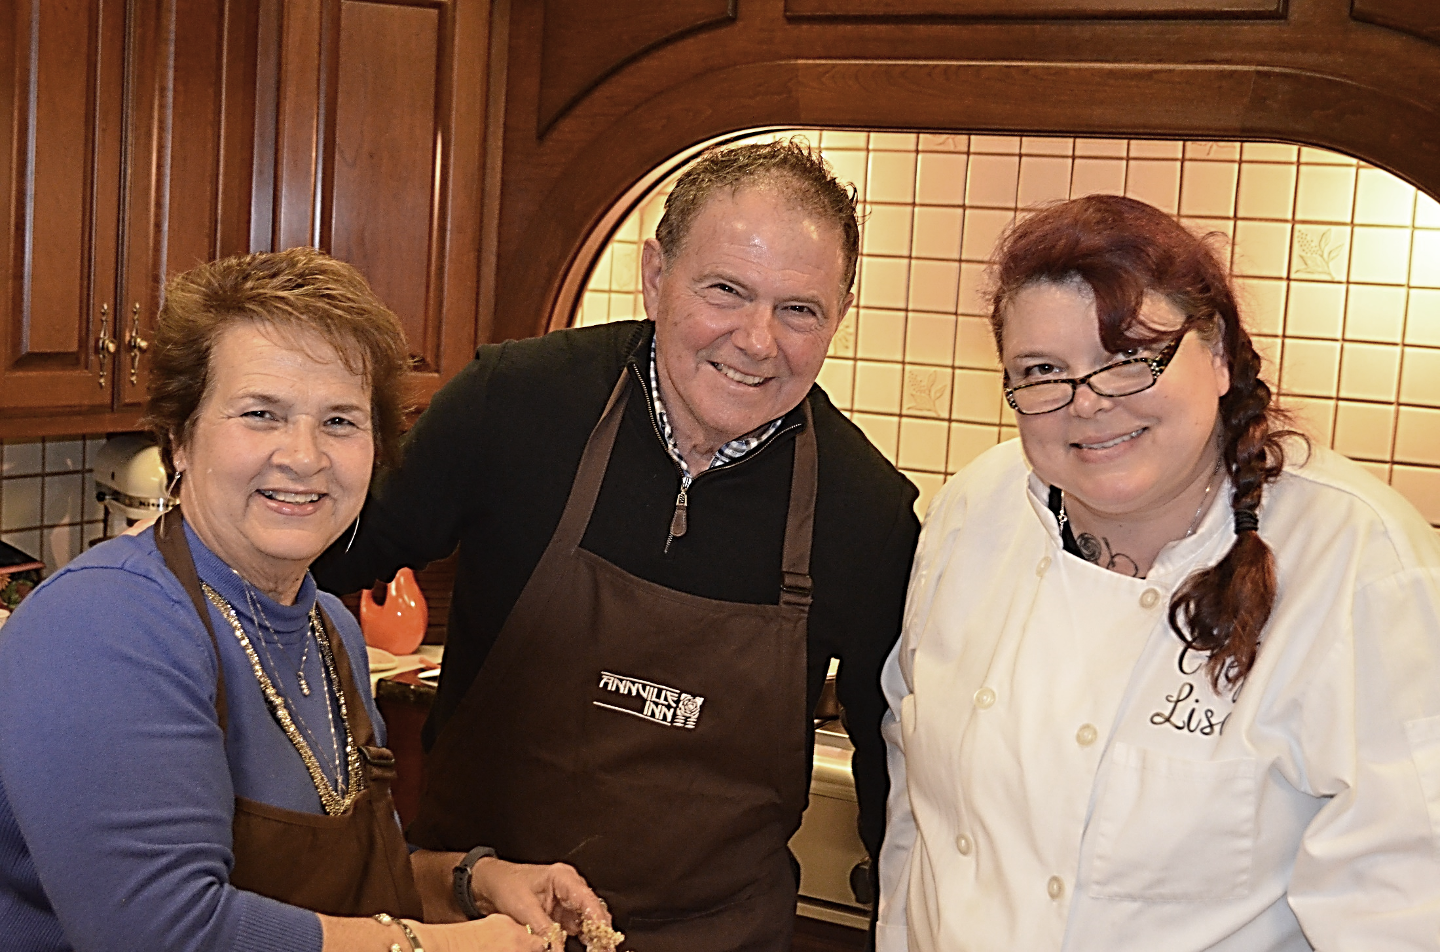 photo of chef with two student guests in kitchen